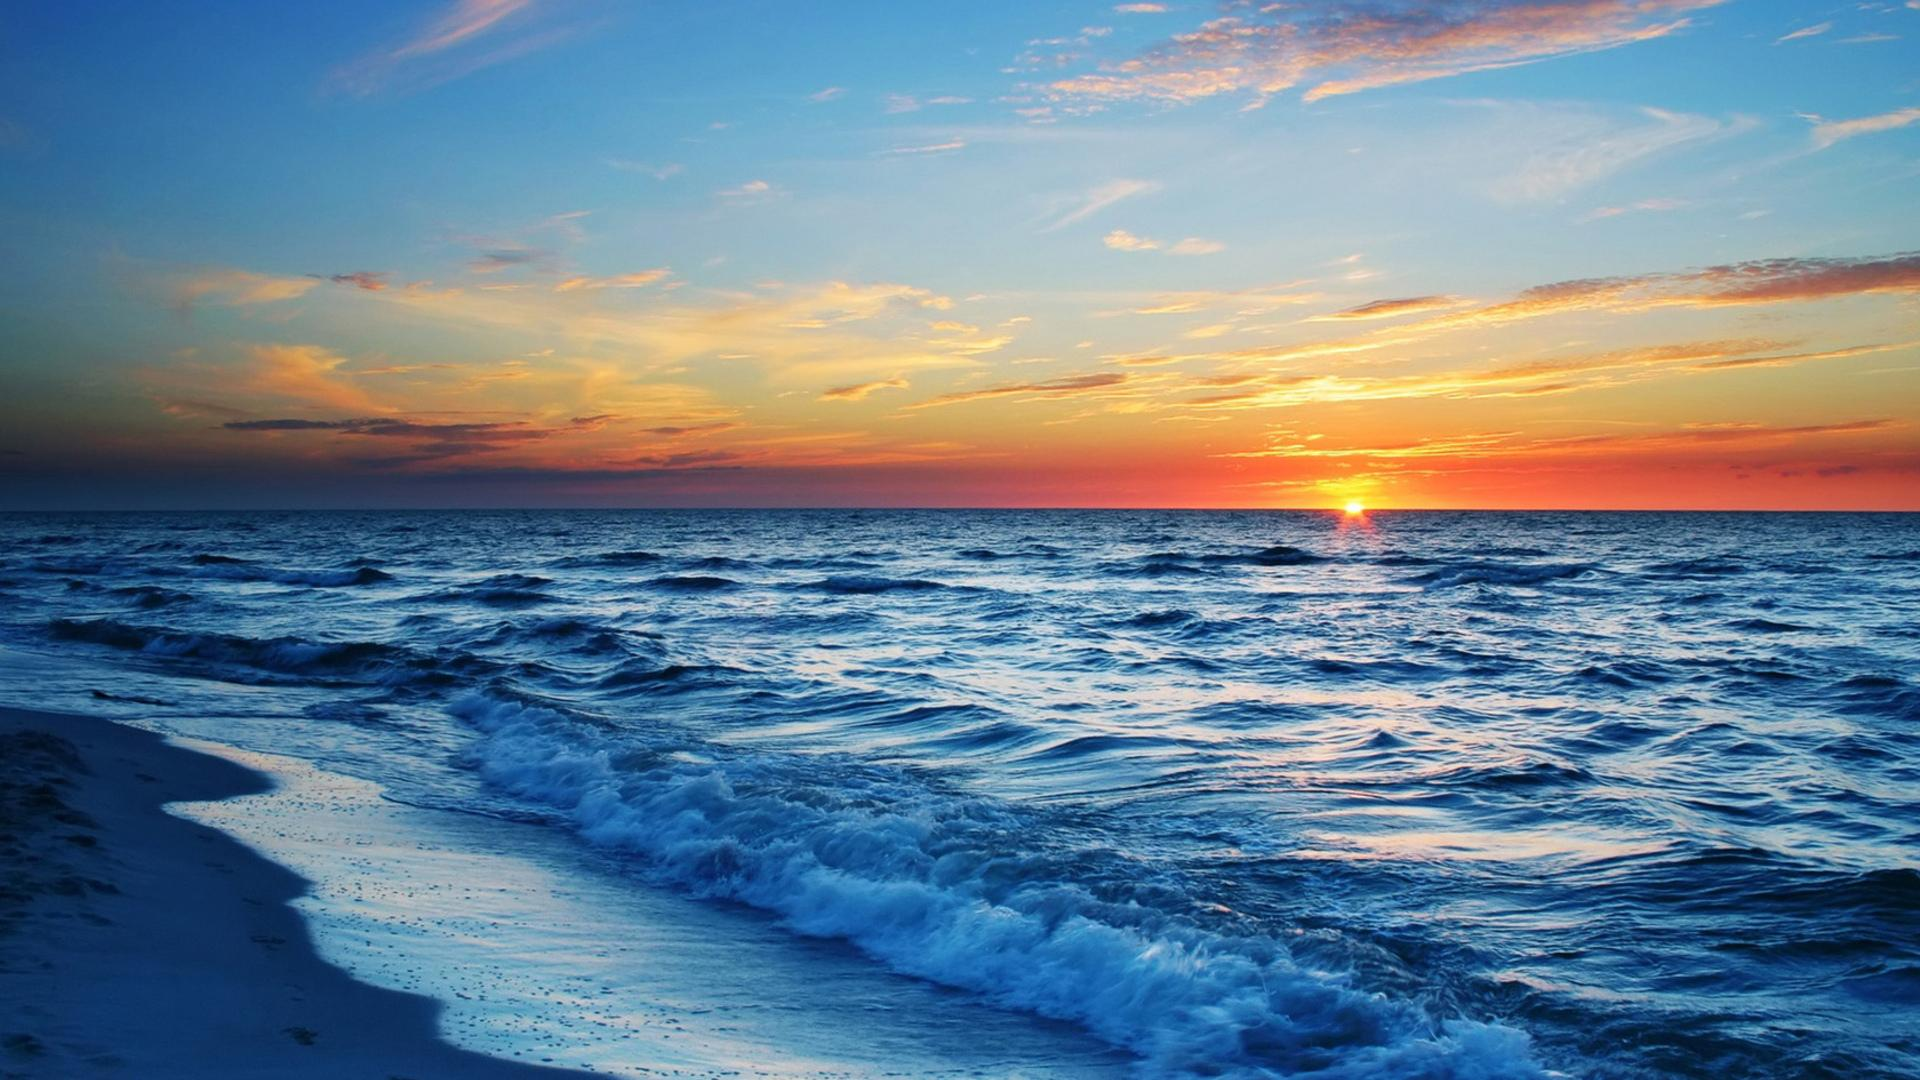 Beach Desktop Backgrounds Ocean Sunset 4K Ultra HD 862772 Ssoflx 1920x1080